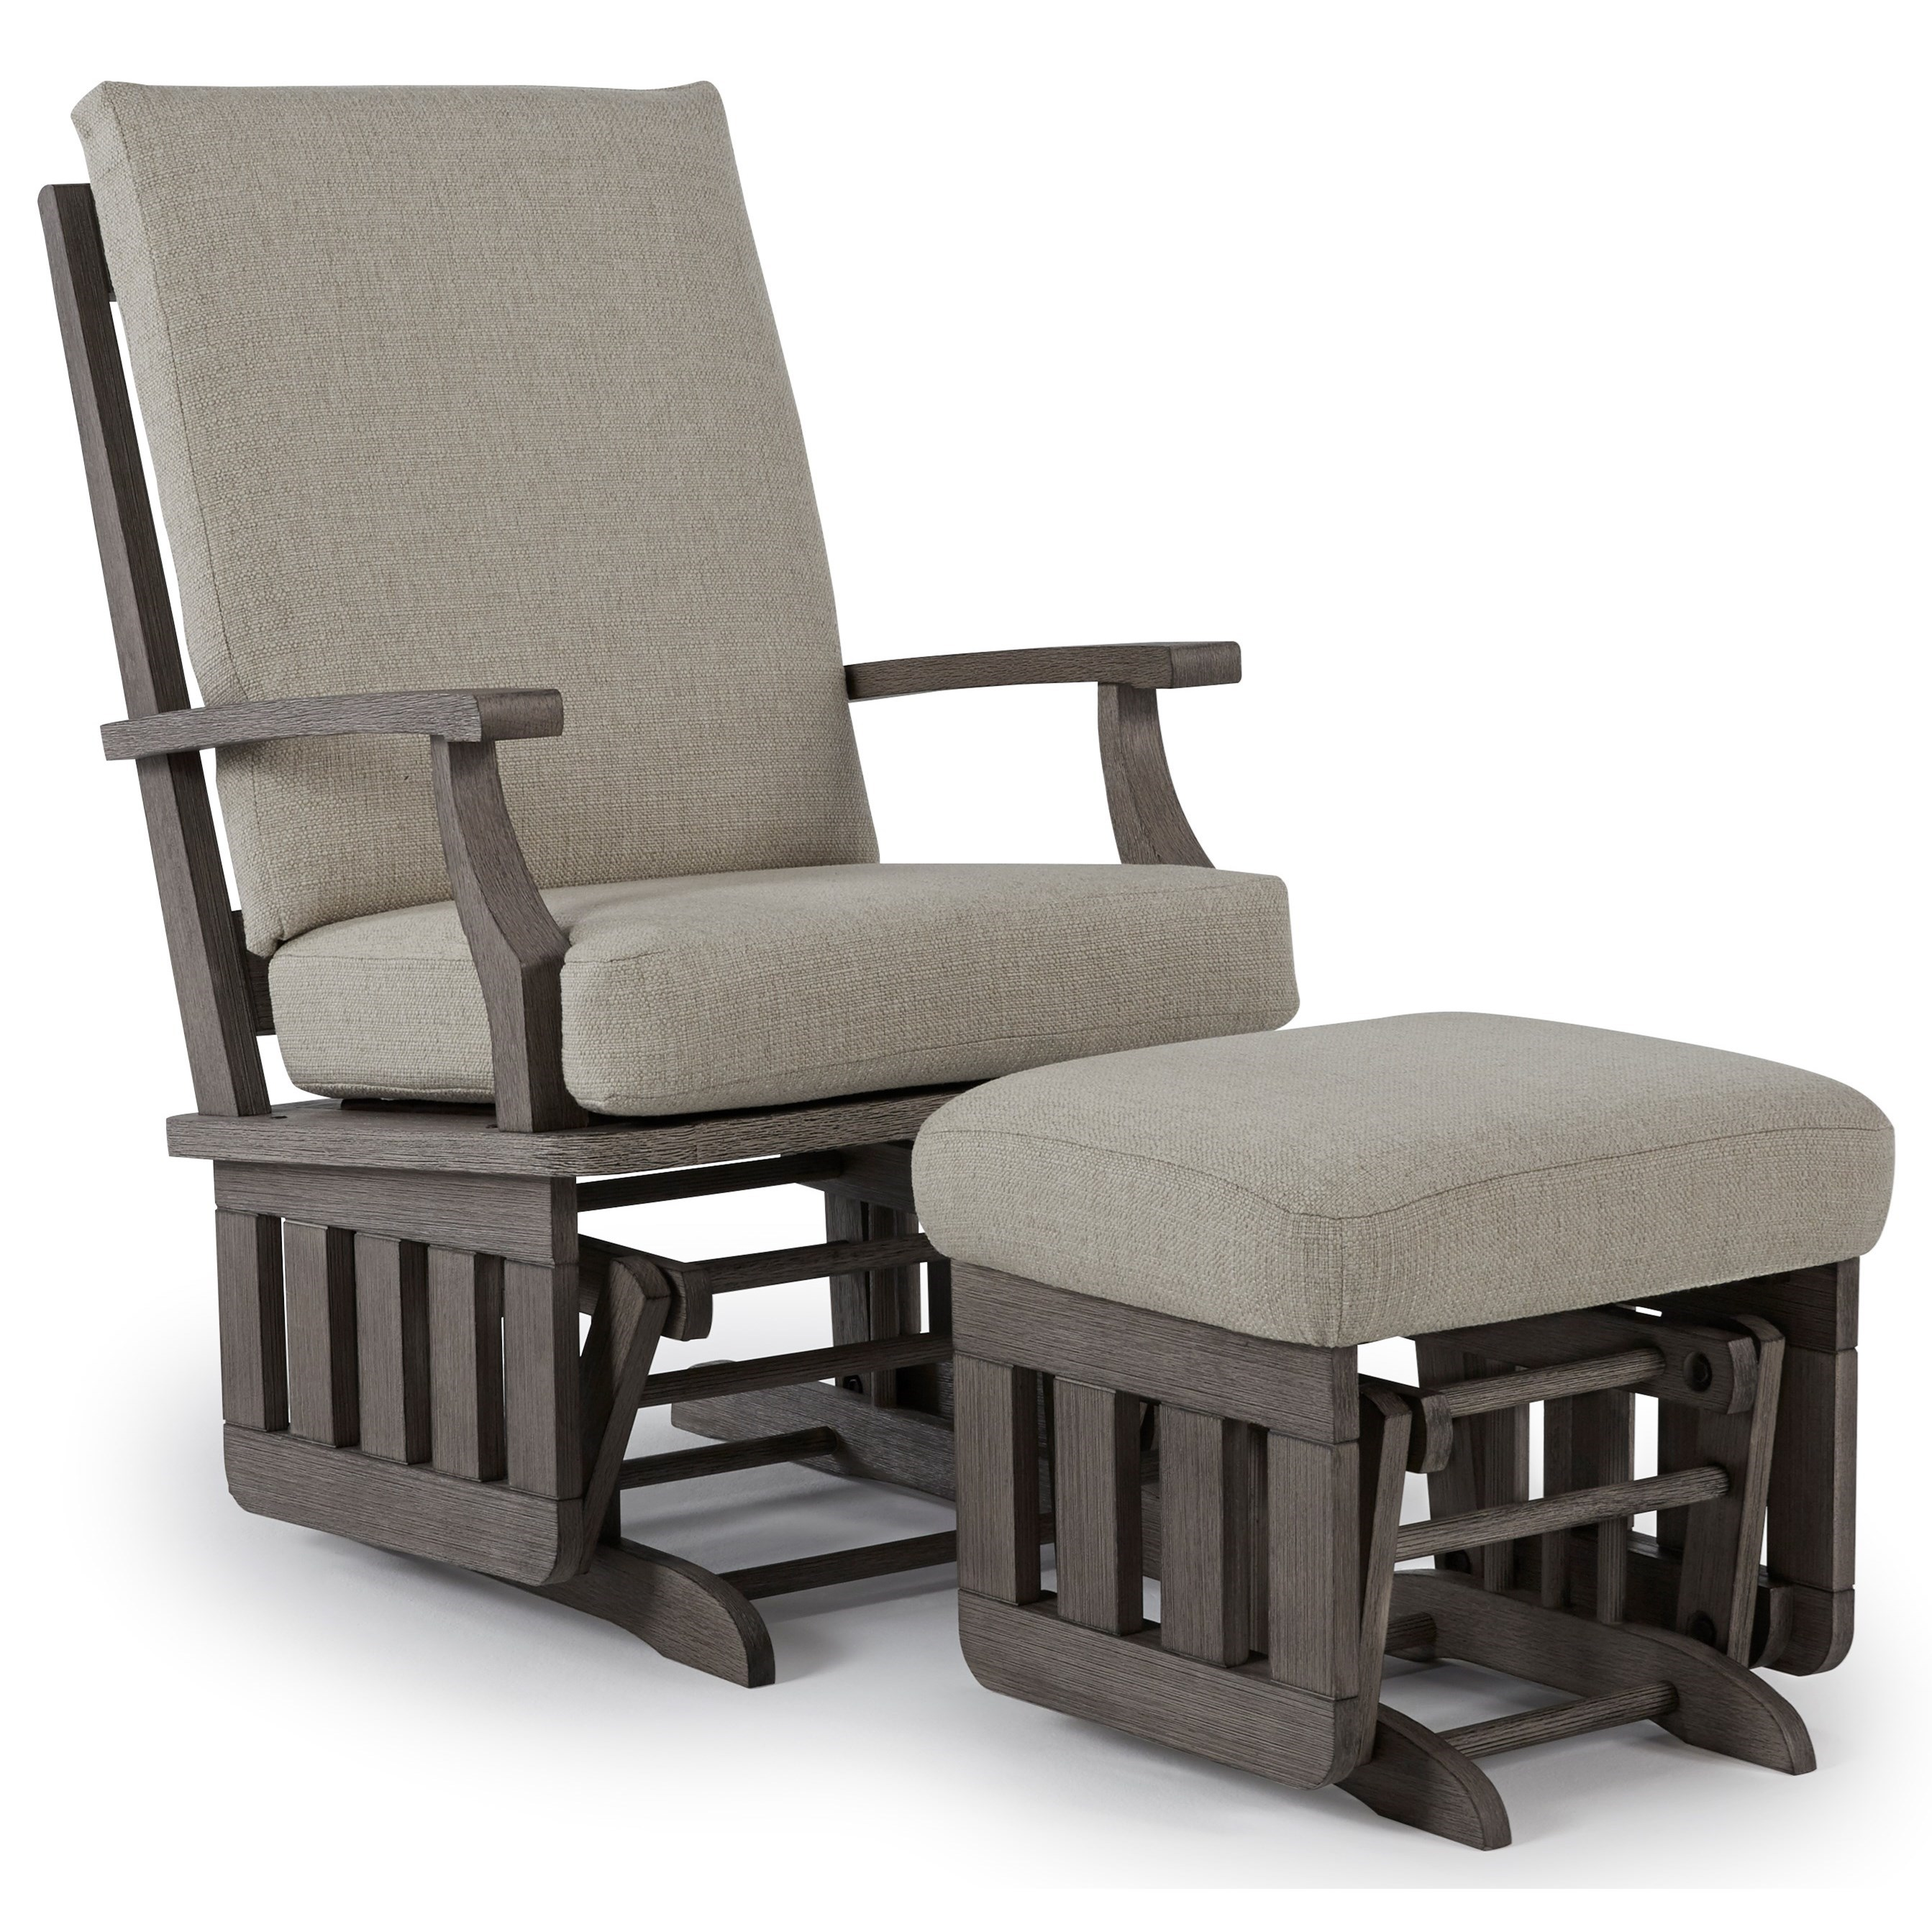 Best home furnishings glider rockers casual glide rocker for Best furniture for home